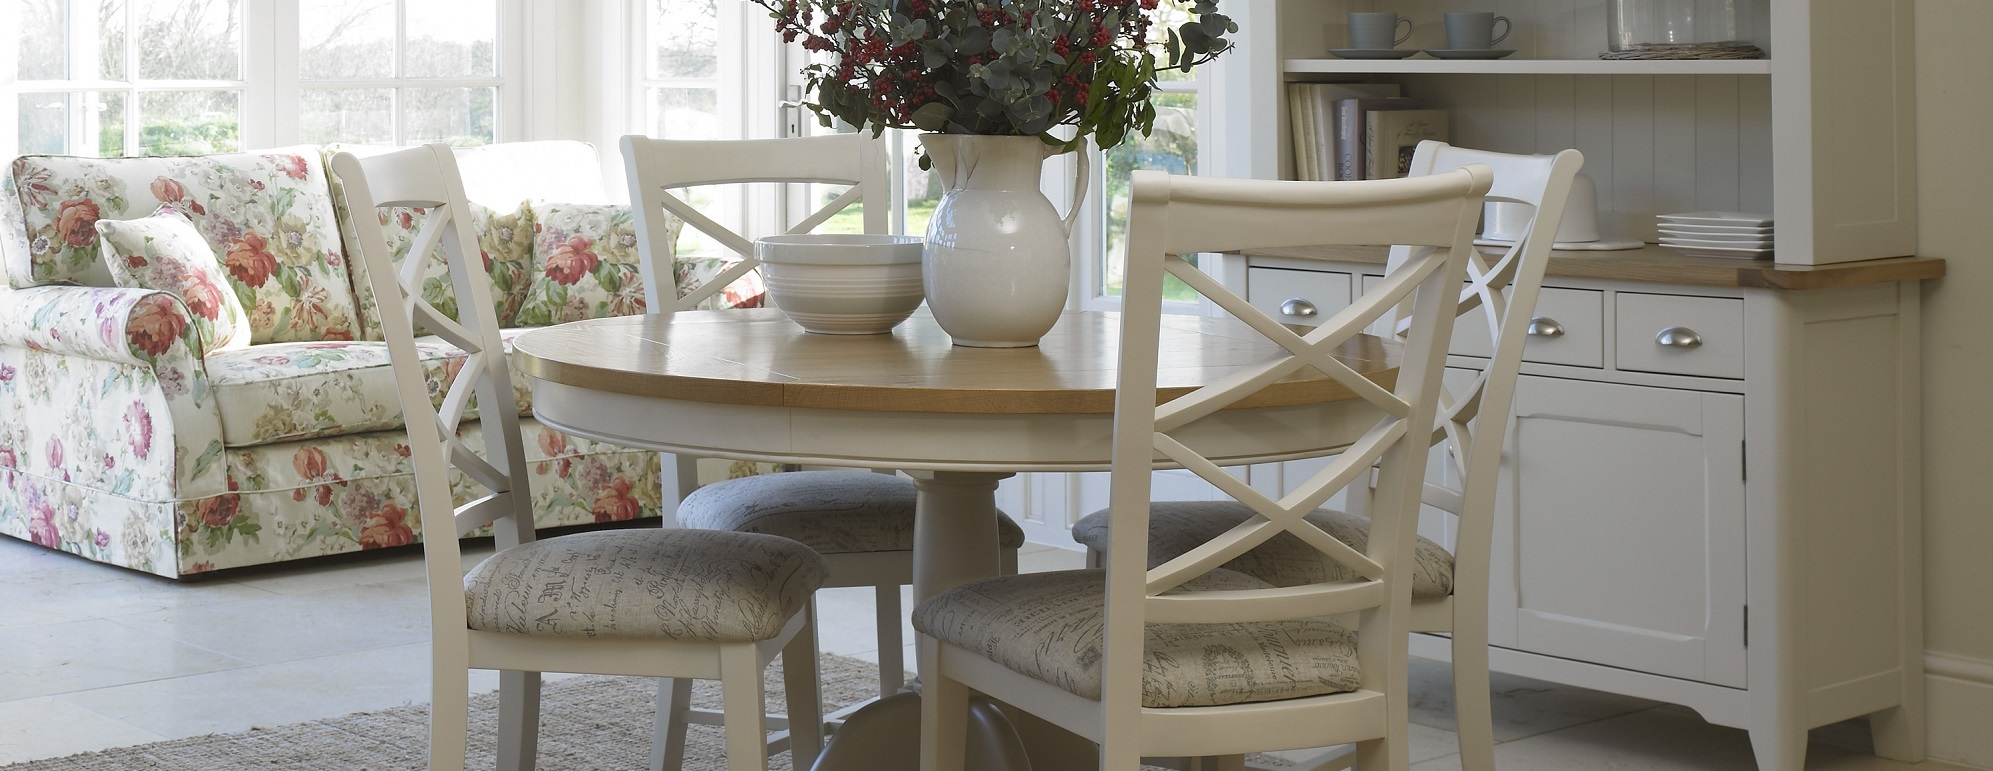 Dining furniture in uk homes decoration tips for Painted dining room furniture